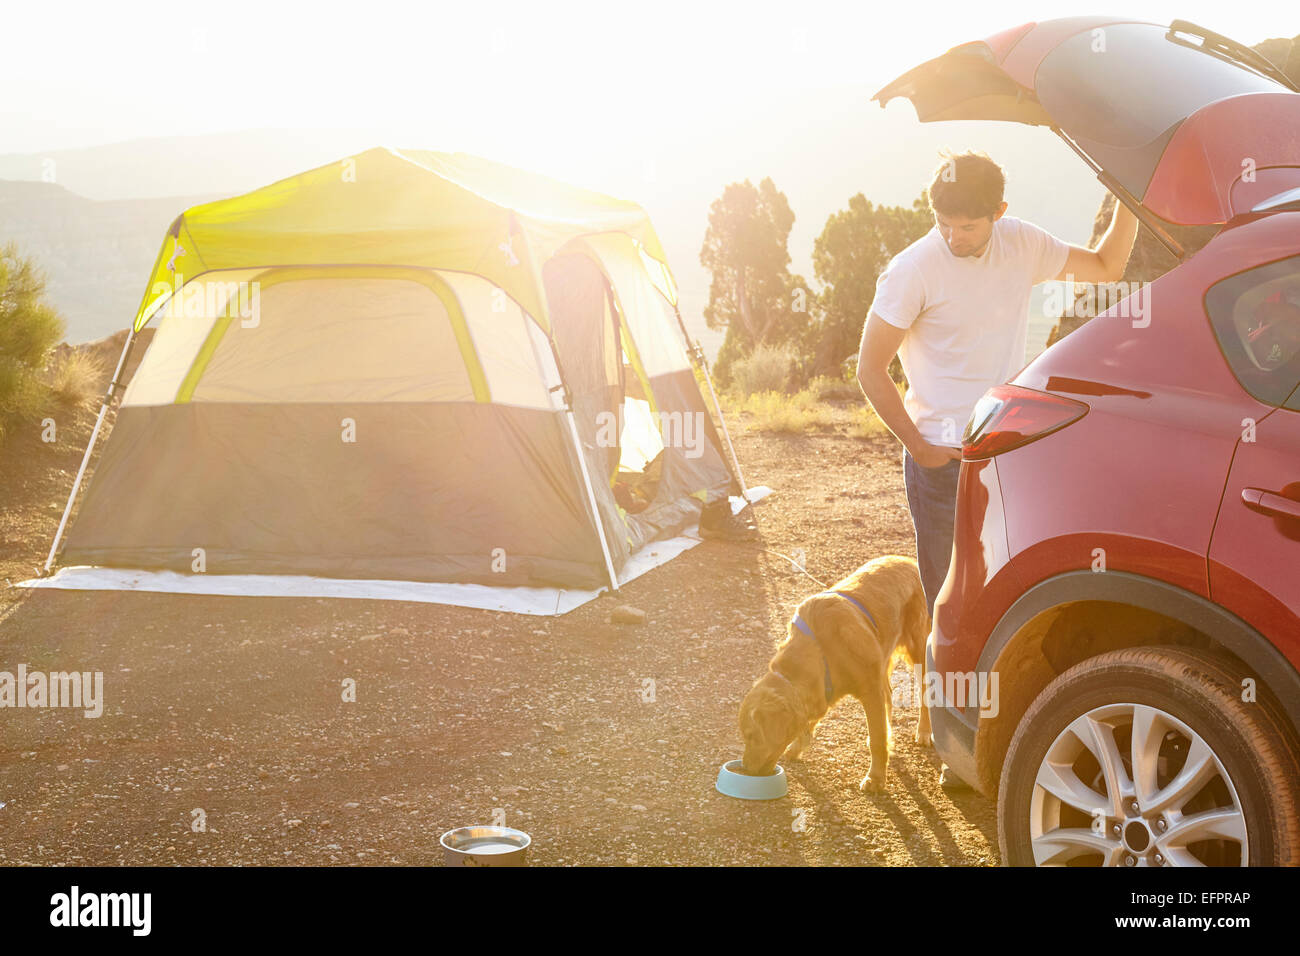 Camping Tent Dog Stock Photos & Camping Tent Dog Stock ...